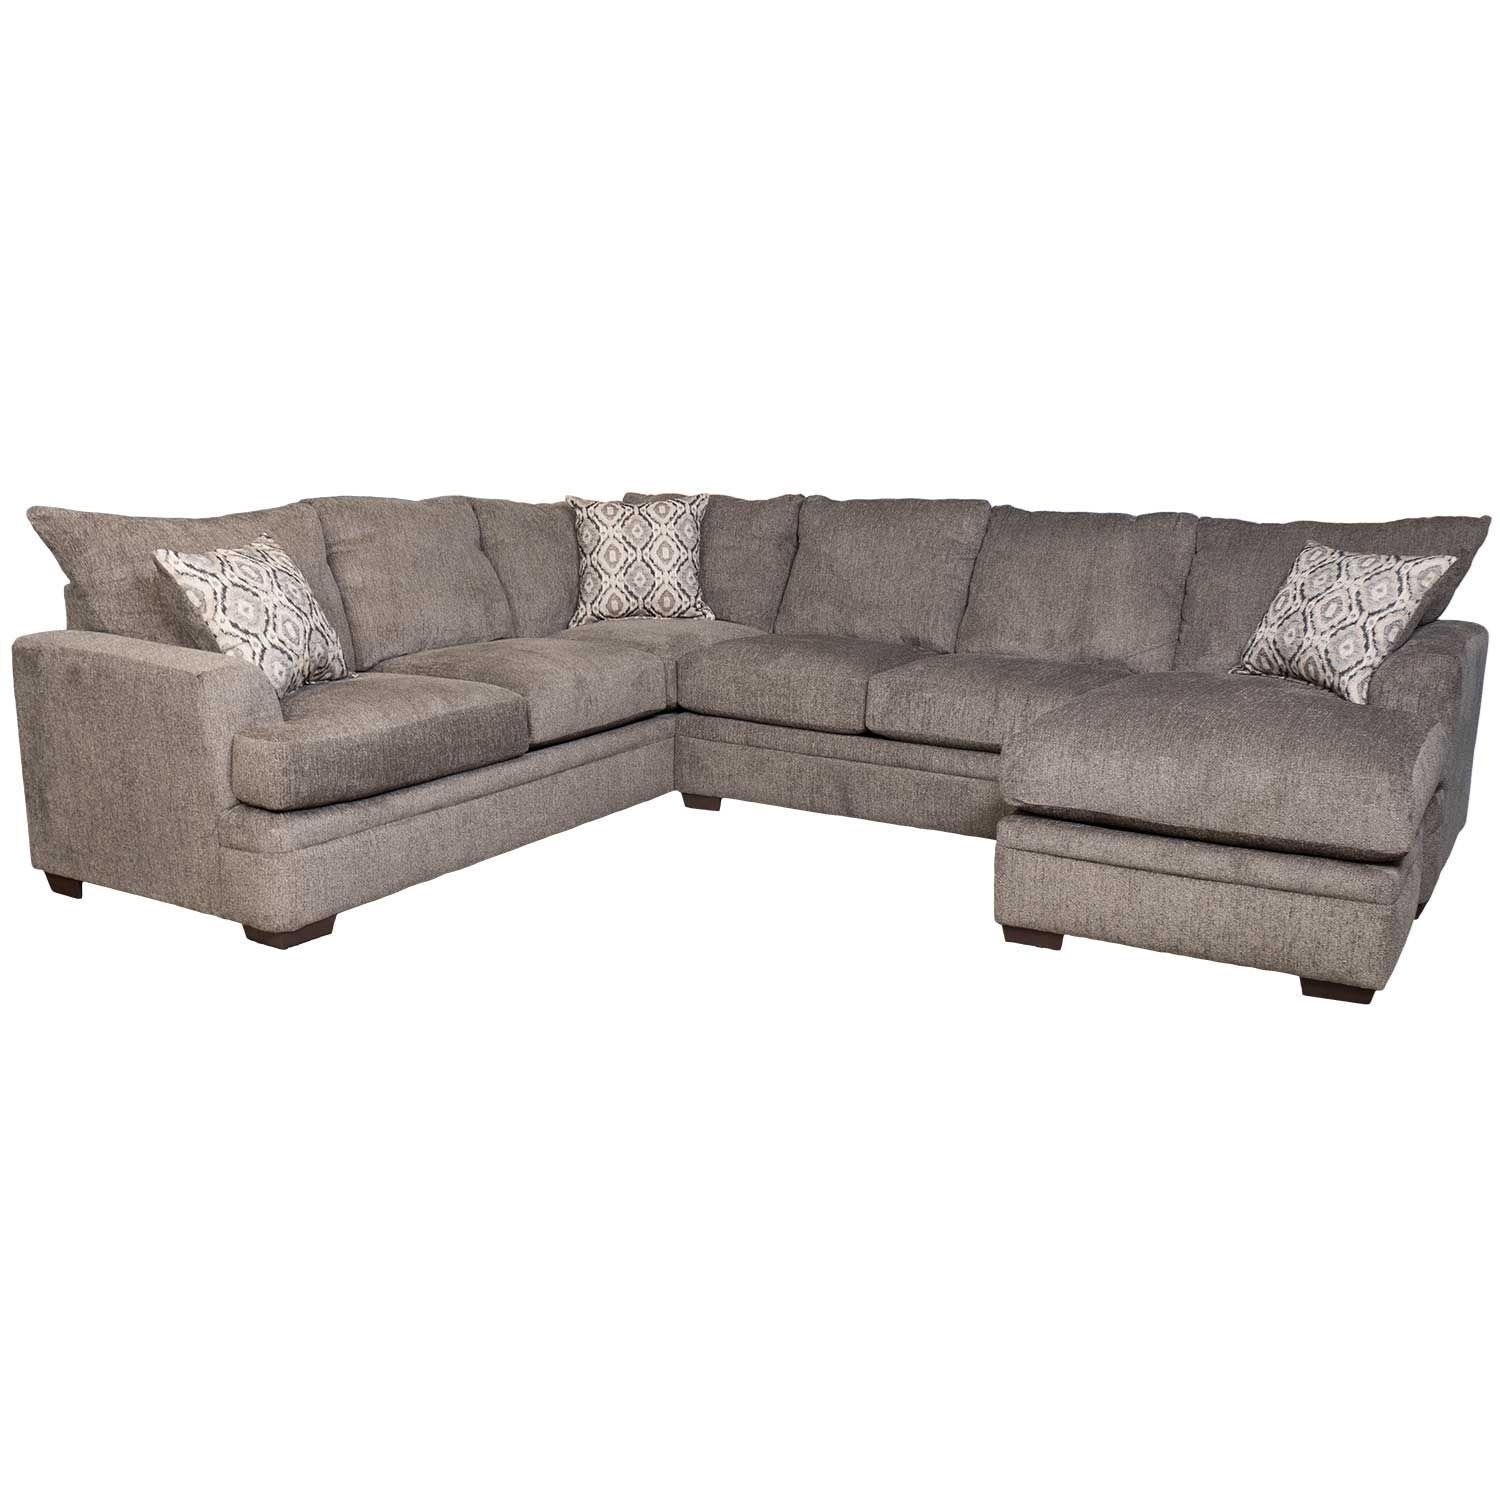 2Pc Pewter Raf Sectional W/chaise C2 68Rc 2Pc | Afw | Afw In Evan 2 Piece Sectionals With Raf Chaise (Image 2 of 25)